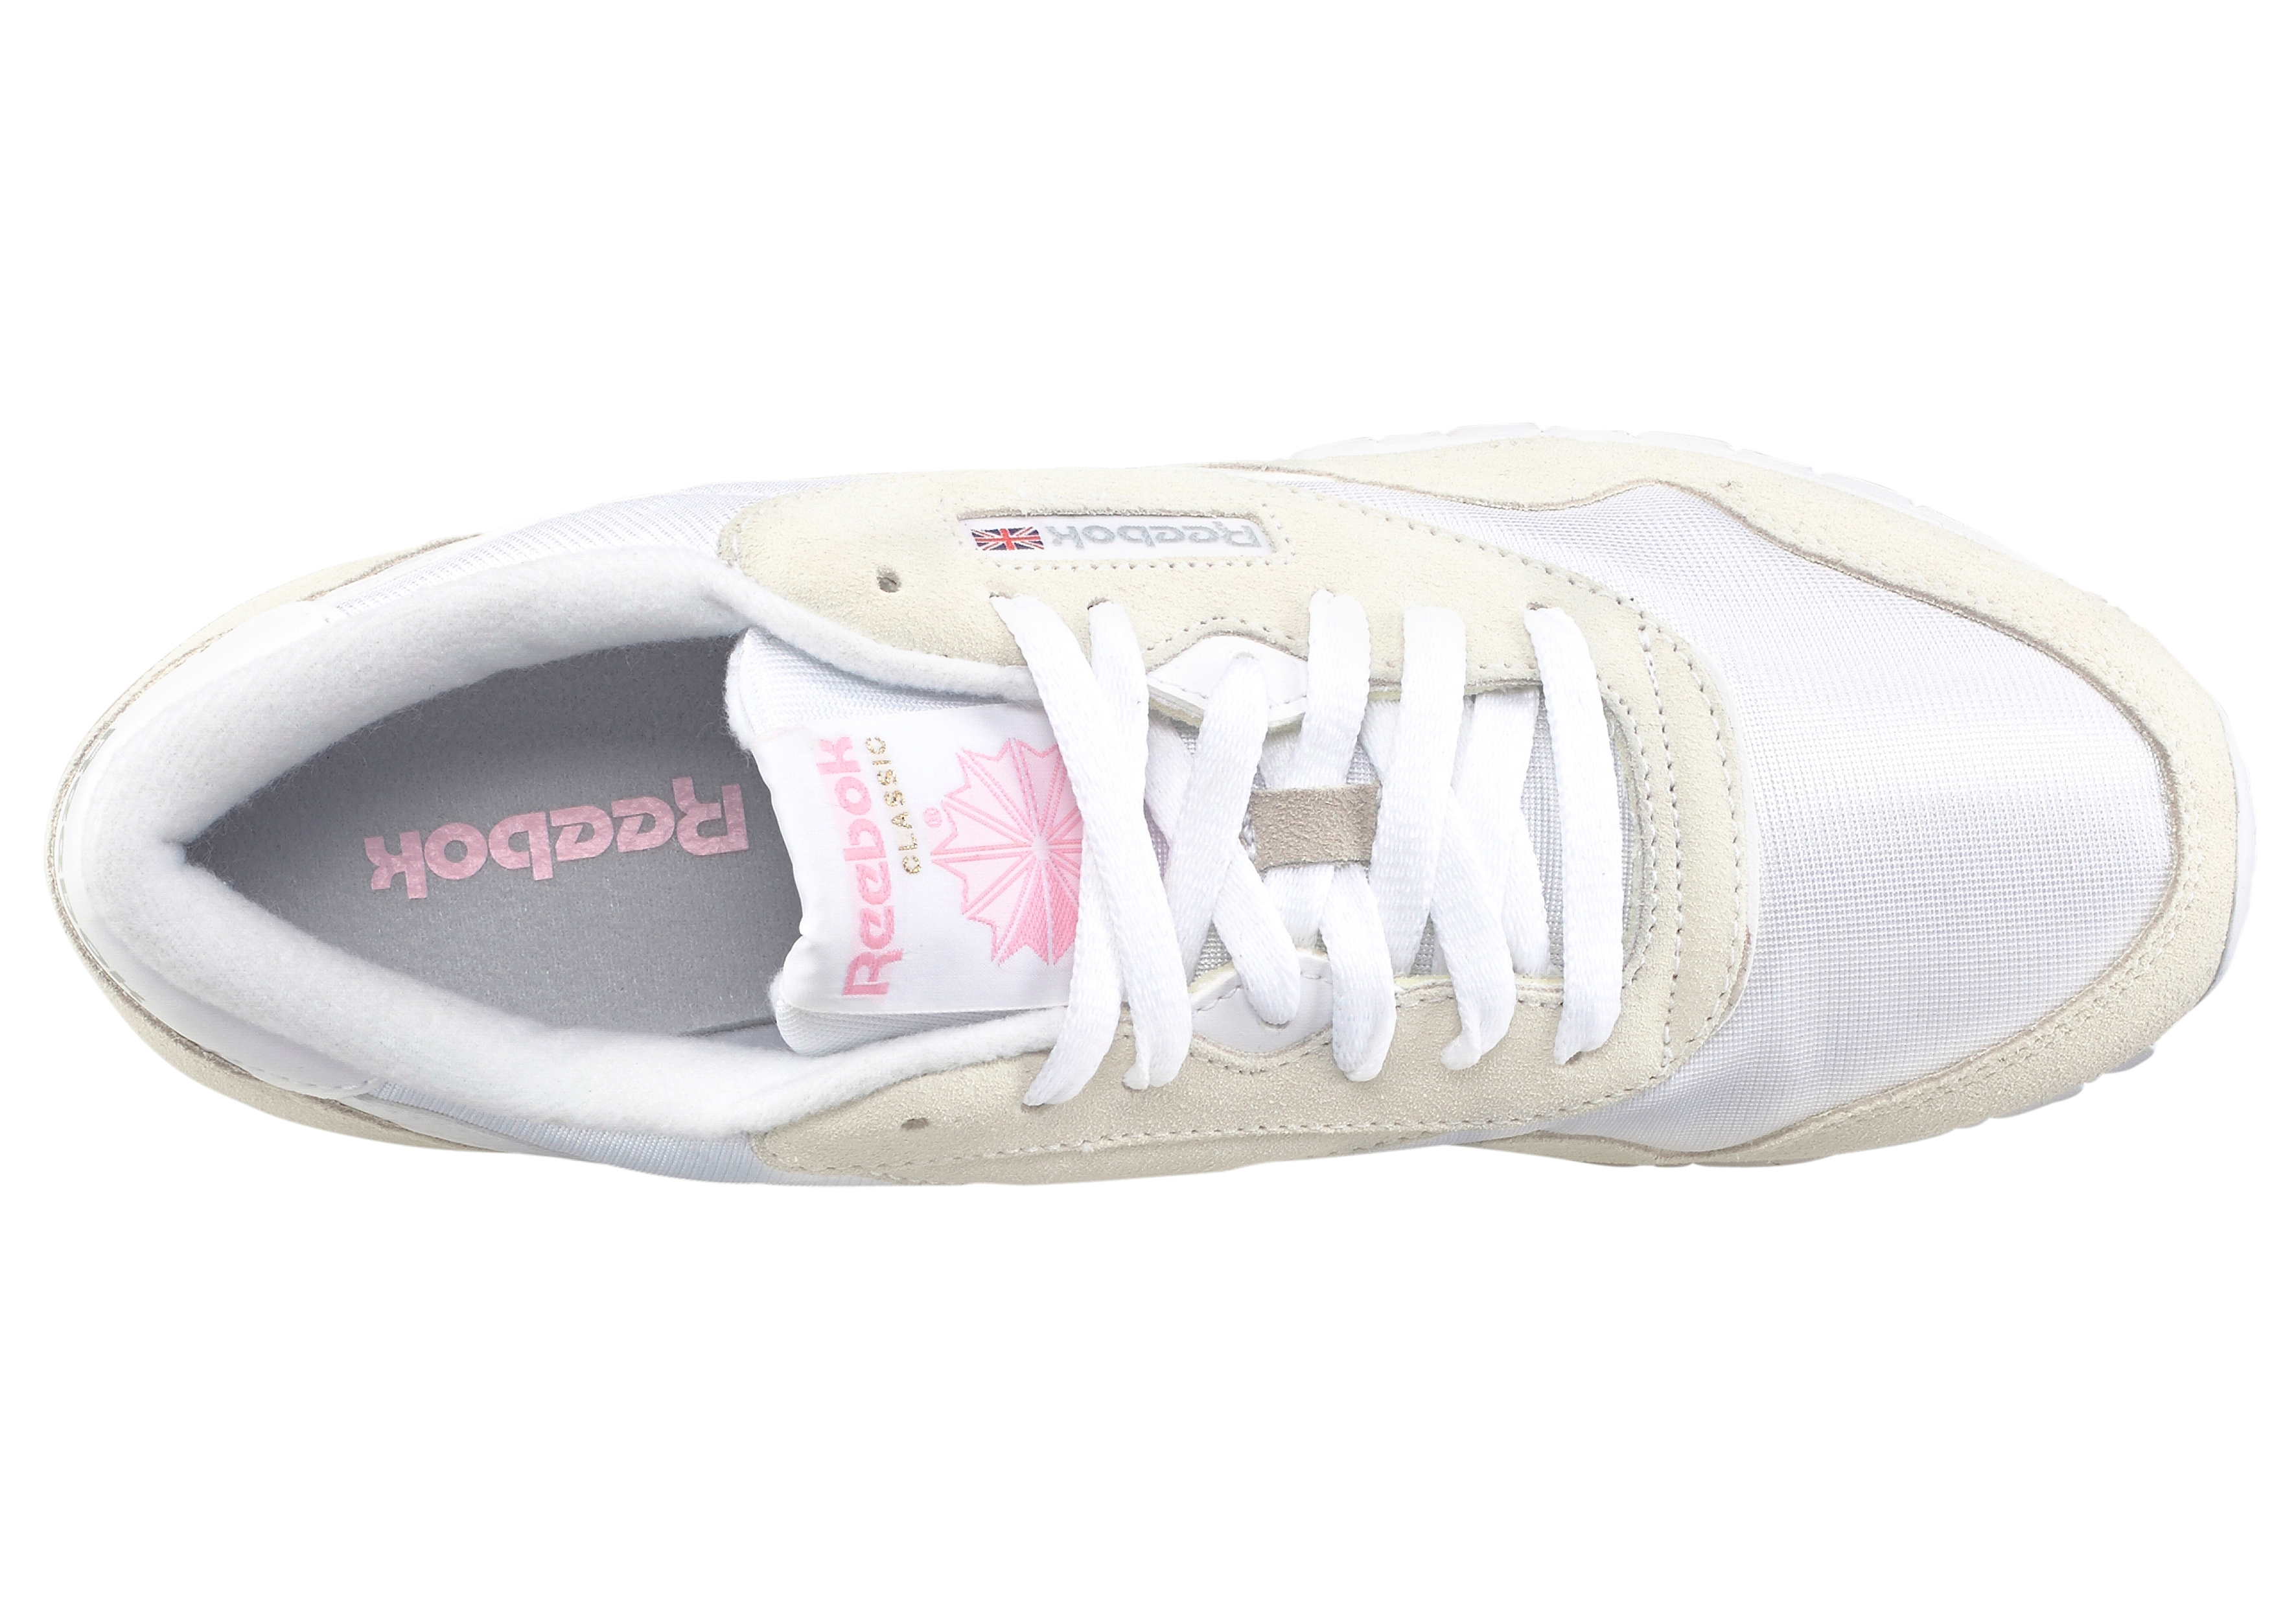 Sneakers Nylon Online Shop Reebok Cl vw8OmNn0